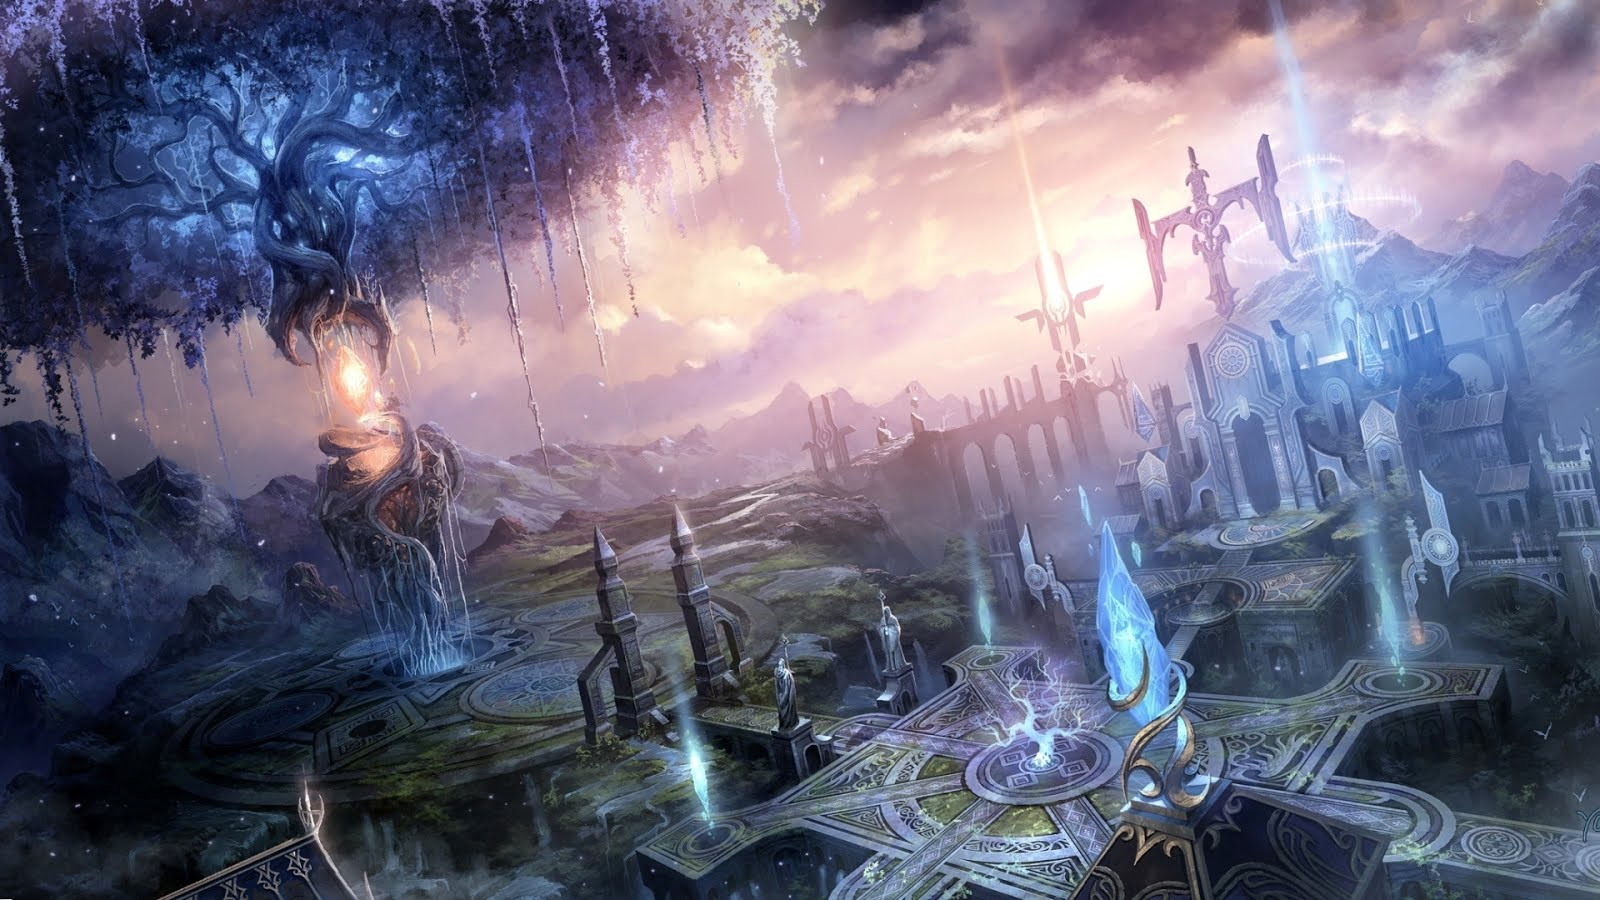 Magic Fantasy Wallpaper 1920x1080